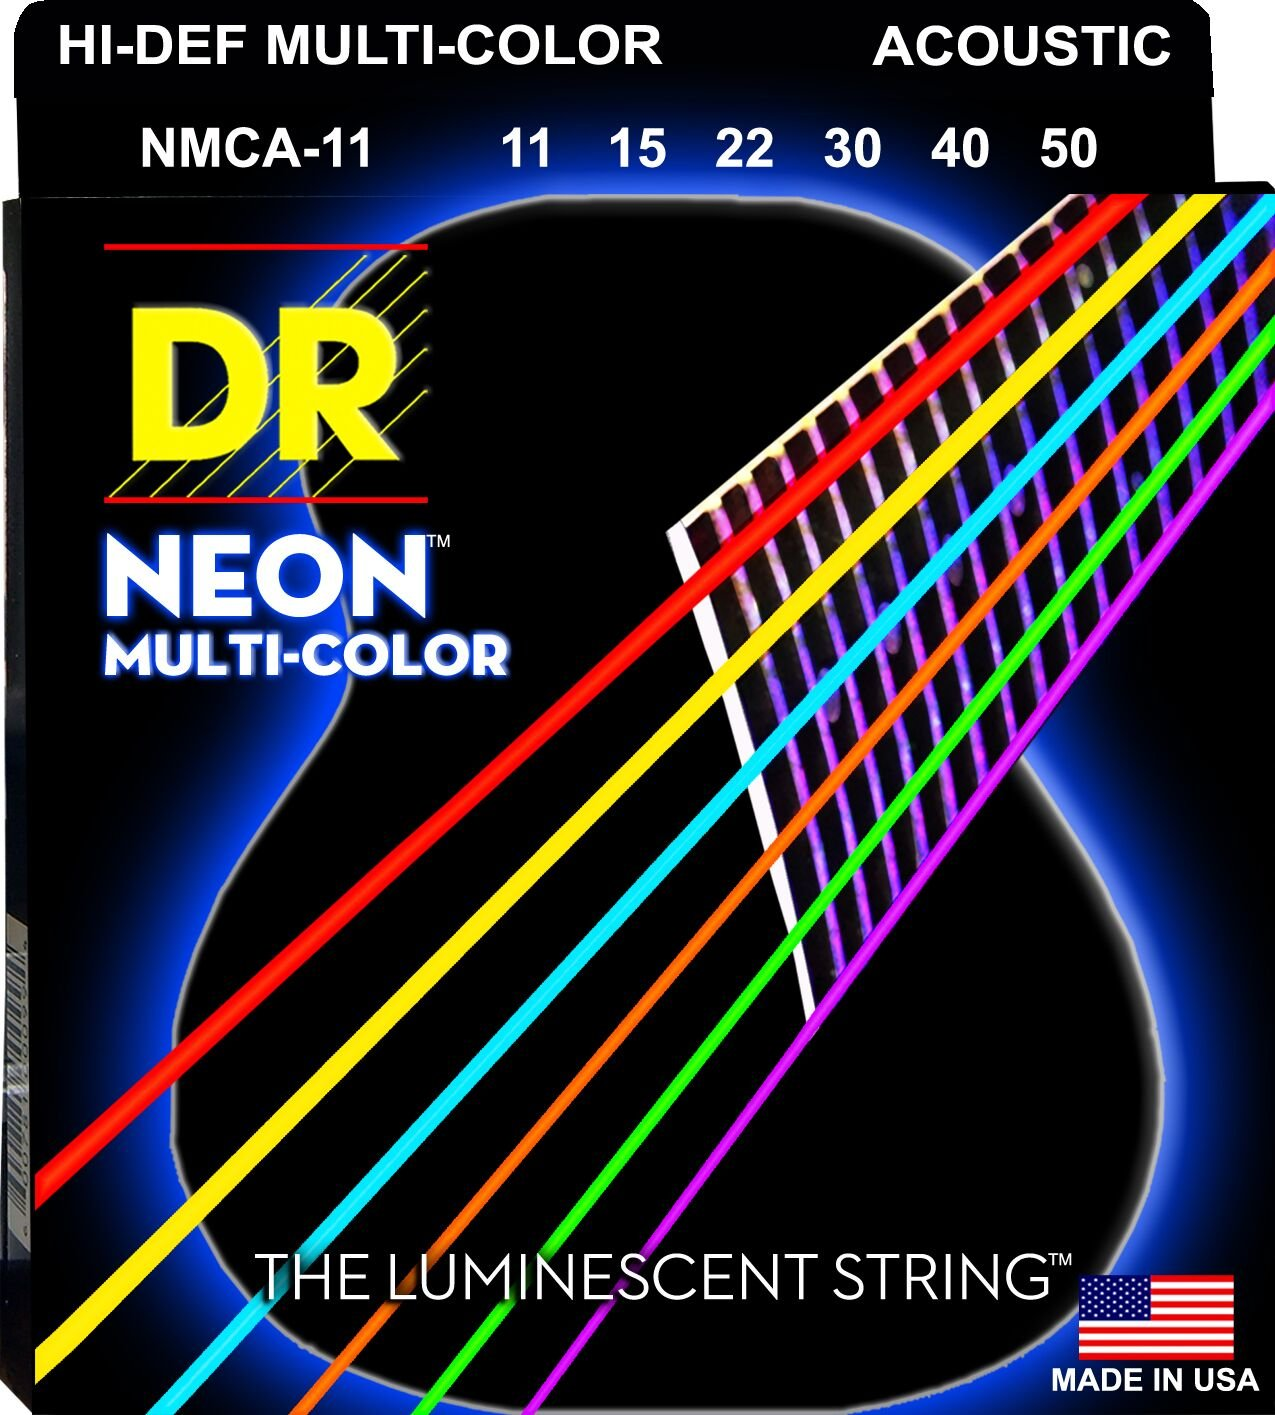 DR Strings NEON NMCA-11 Acoustic Guitar Strings, Hi-Def Multi-Color, Medium Light, 11-50